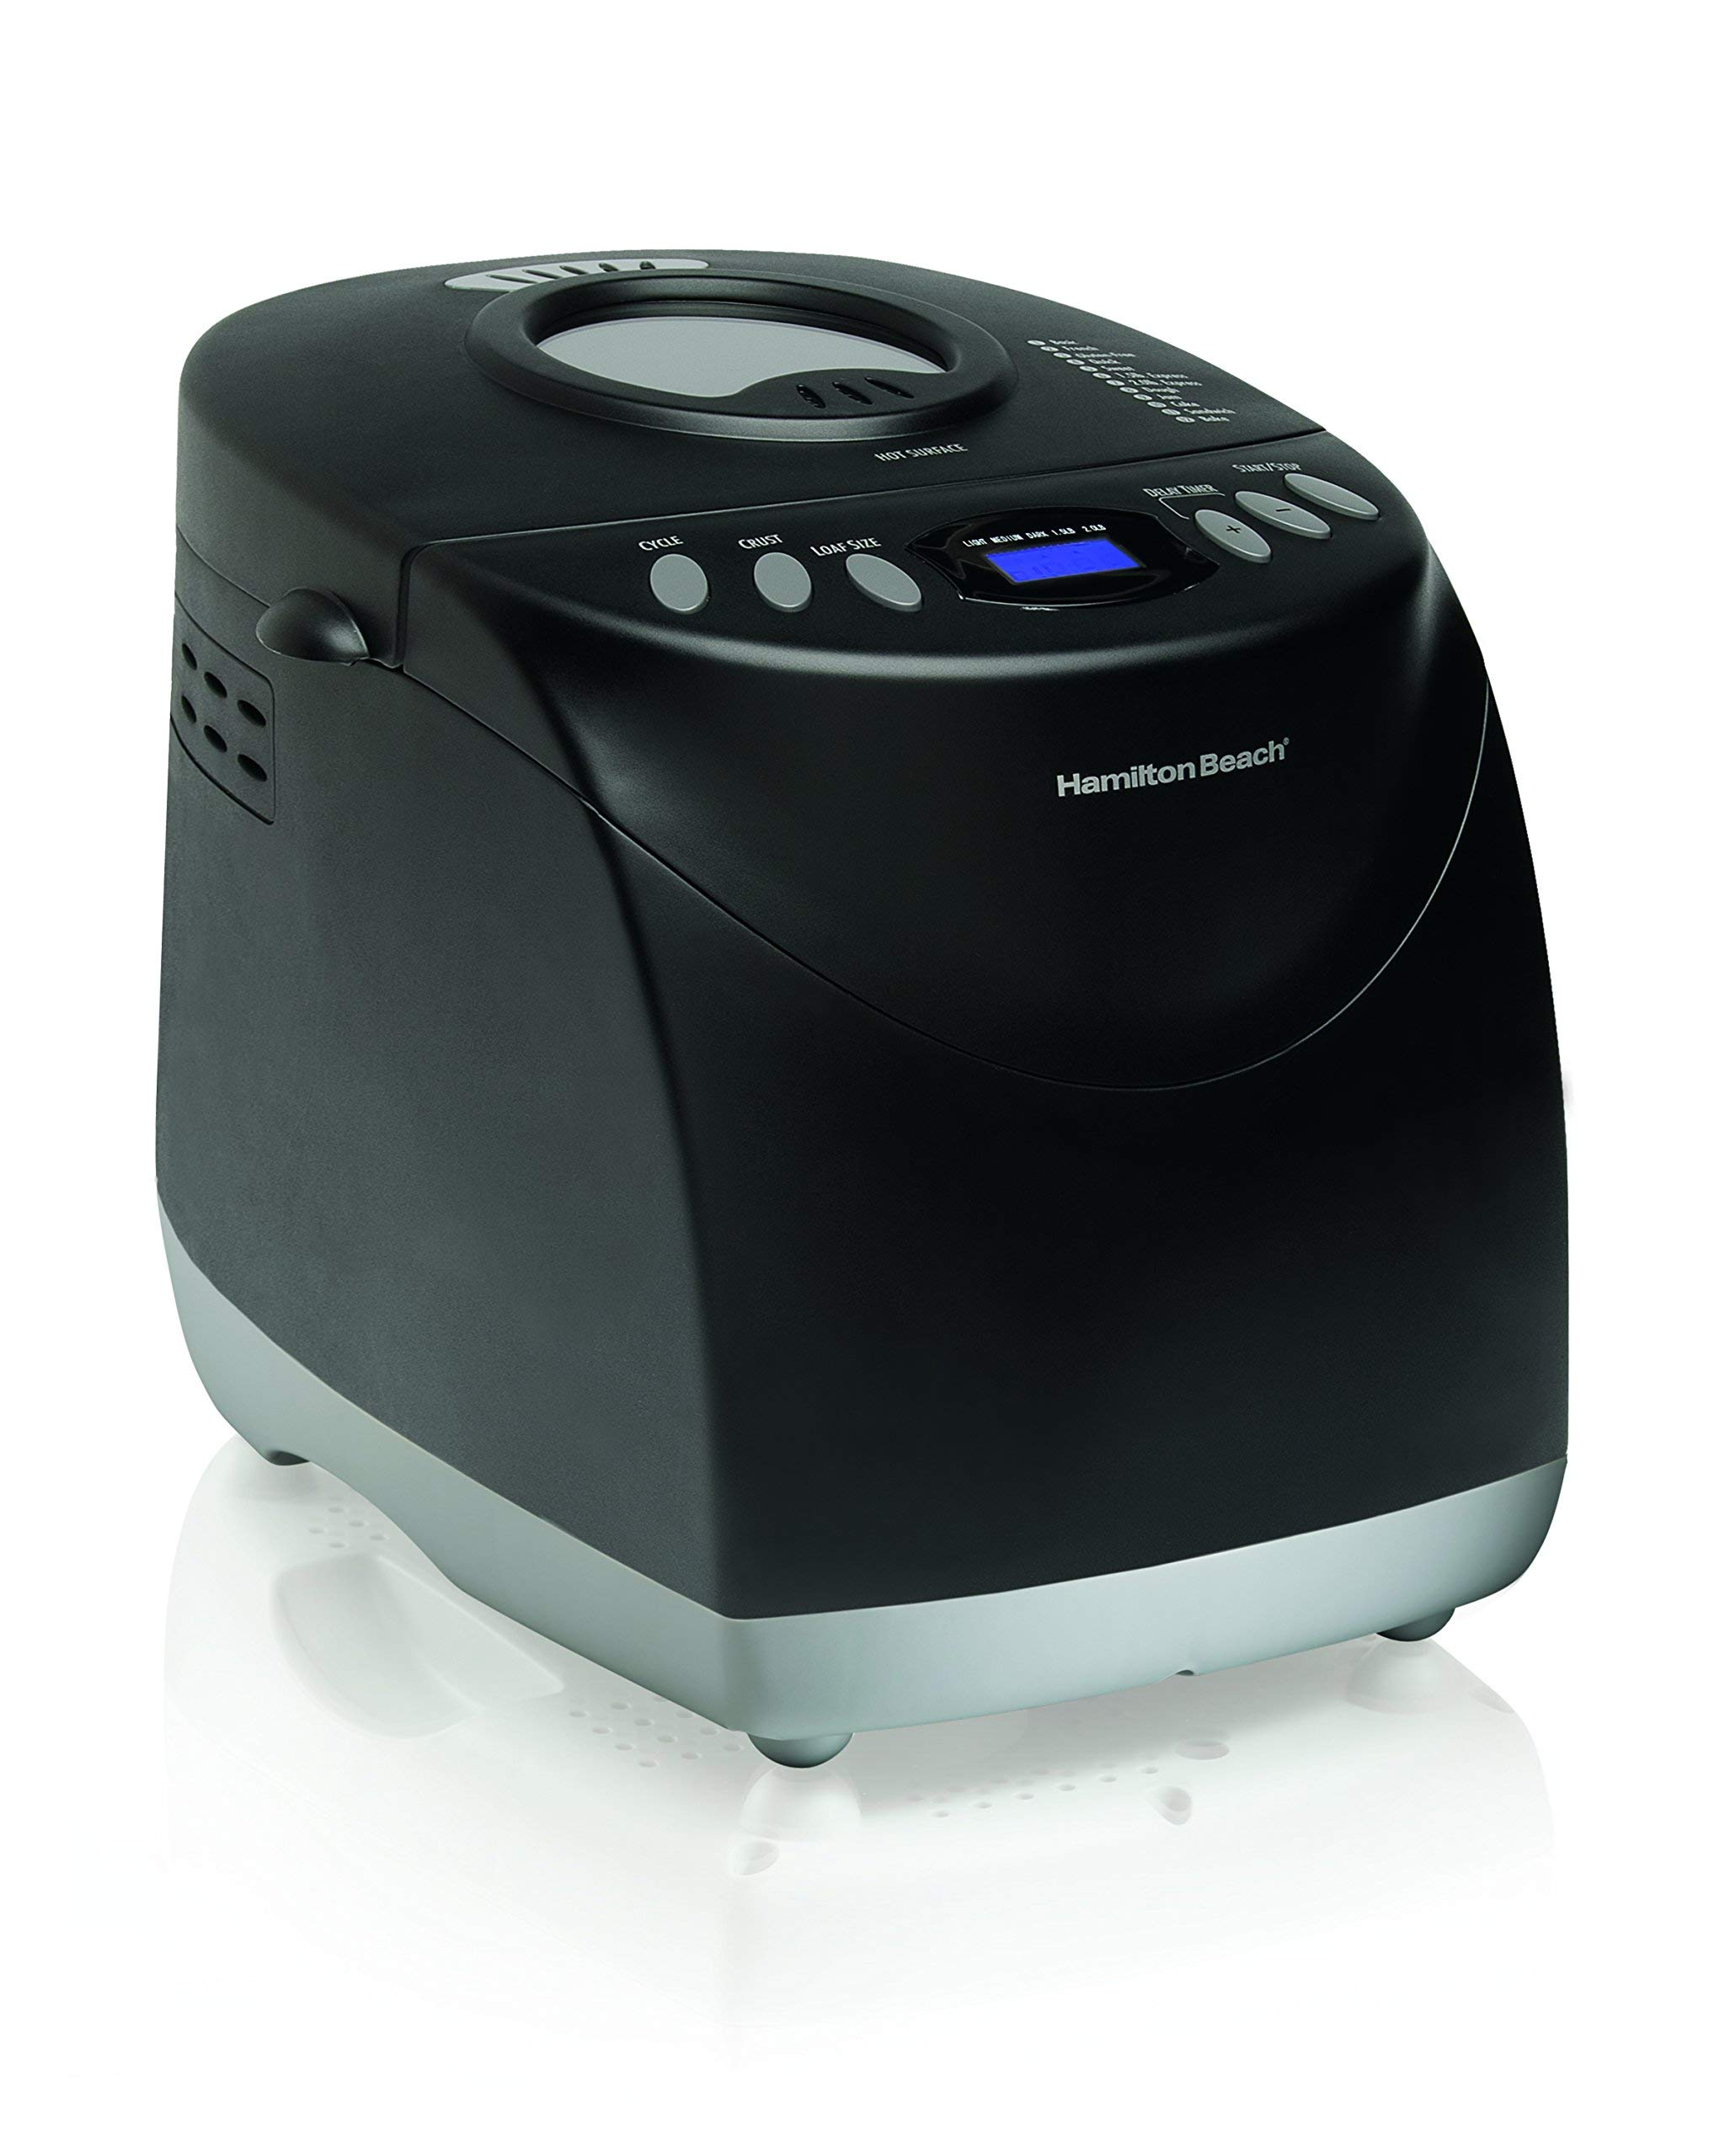 Hamilton Beach (29882C) HomeBaker 2 Lb. Bread Maker Machine with 12 Program Cycles, Non-Stick Dishwasher-Safe Pan and 2 Kneading Paddles, Black (Renewed)